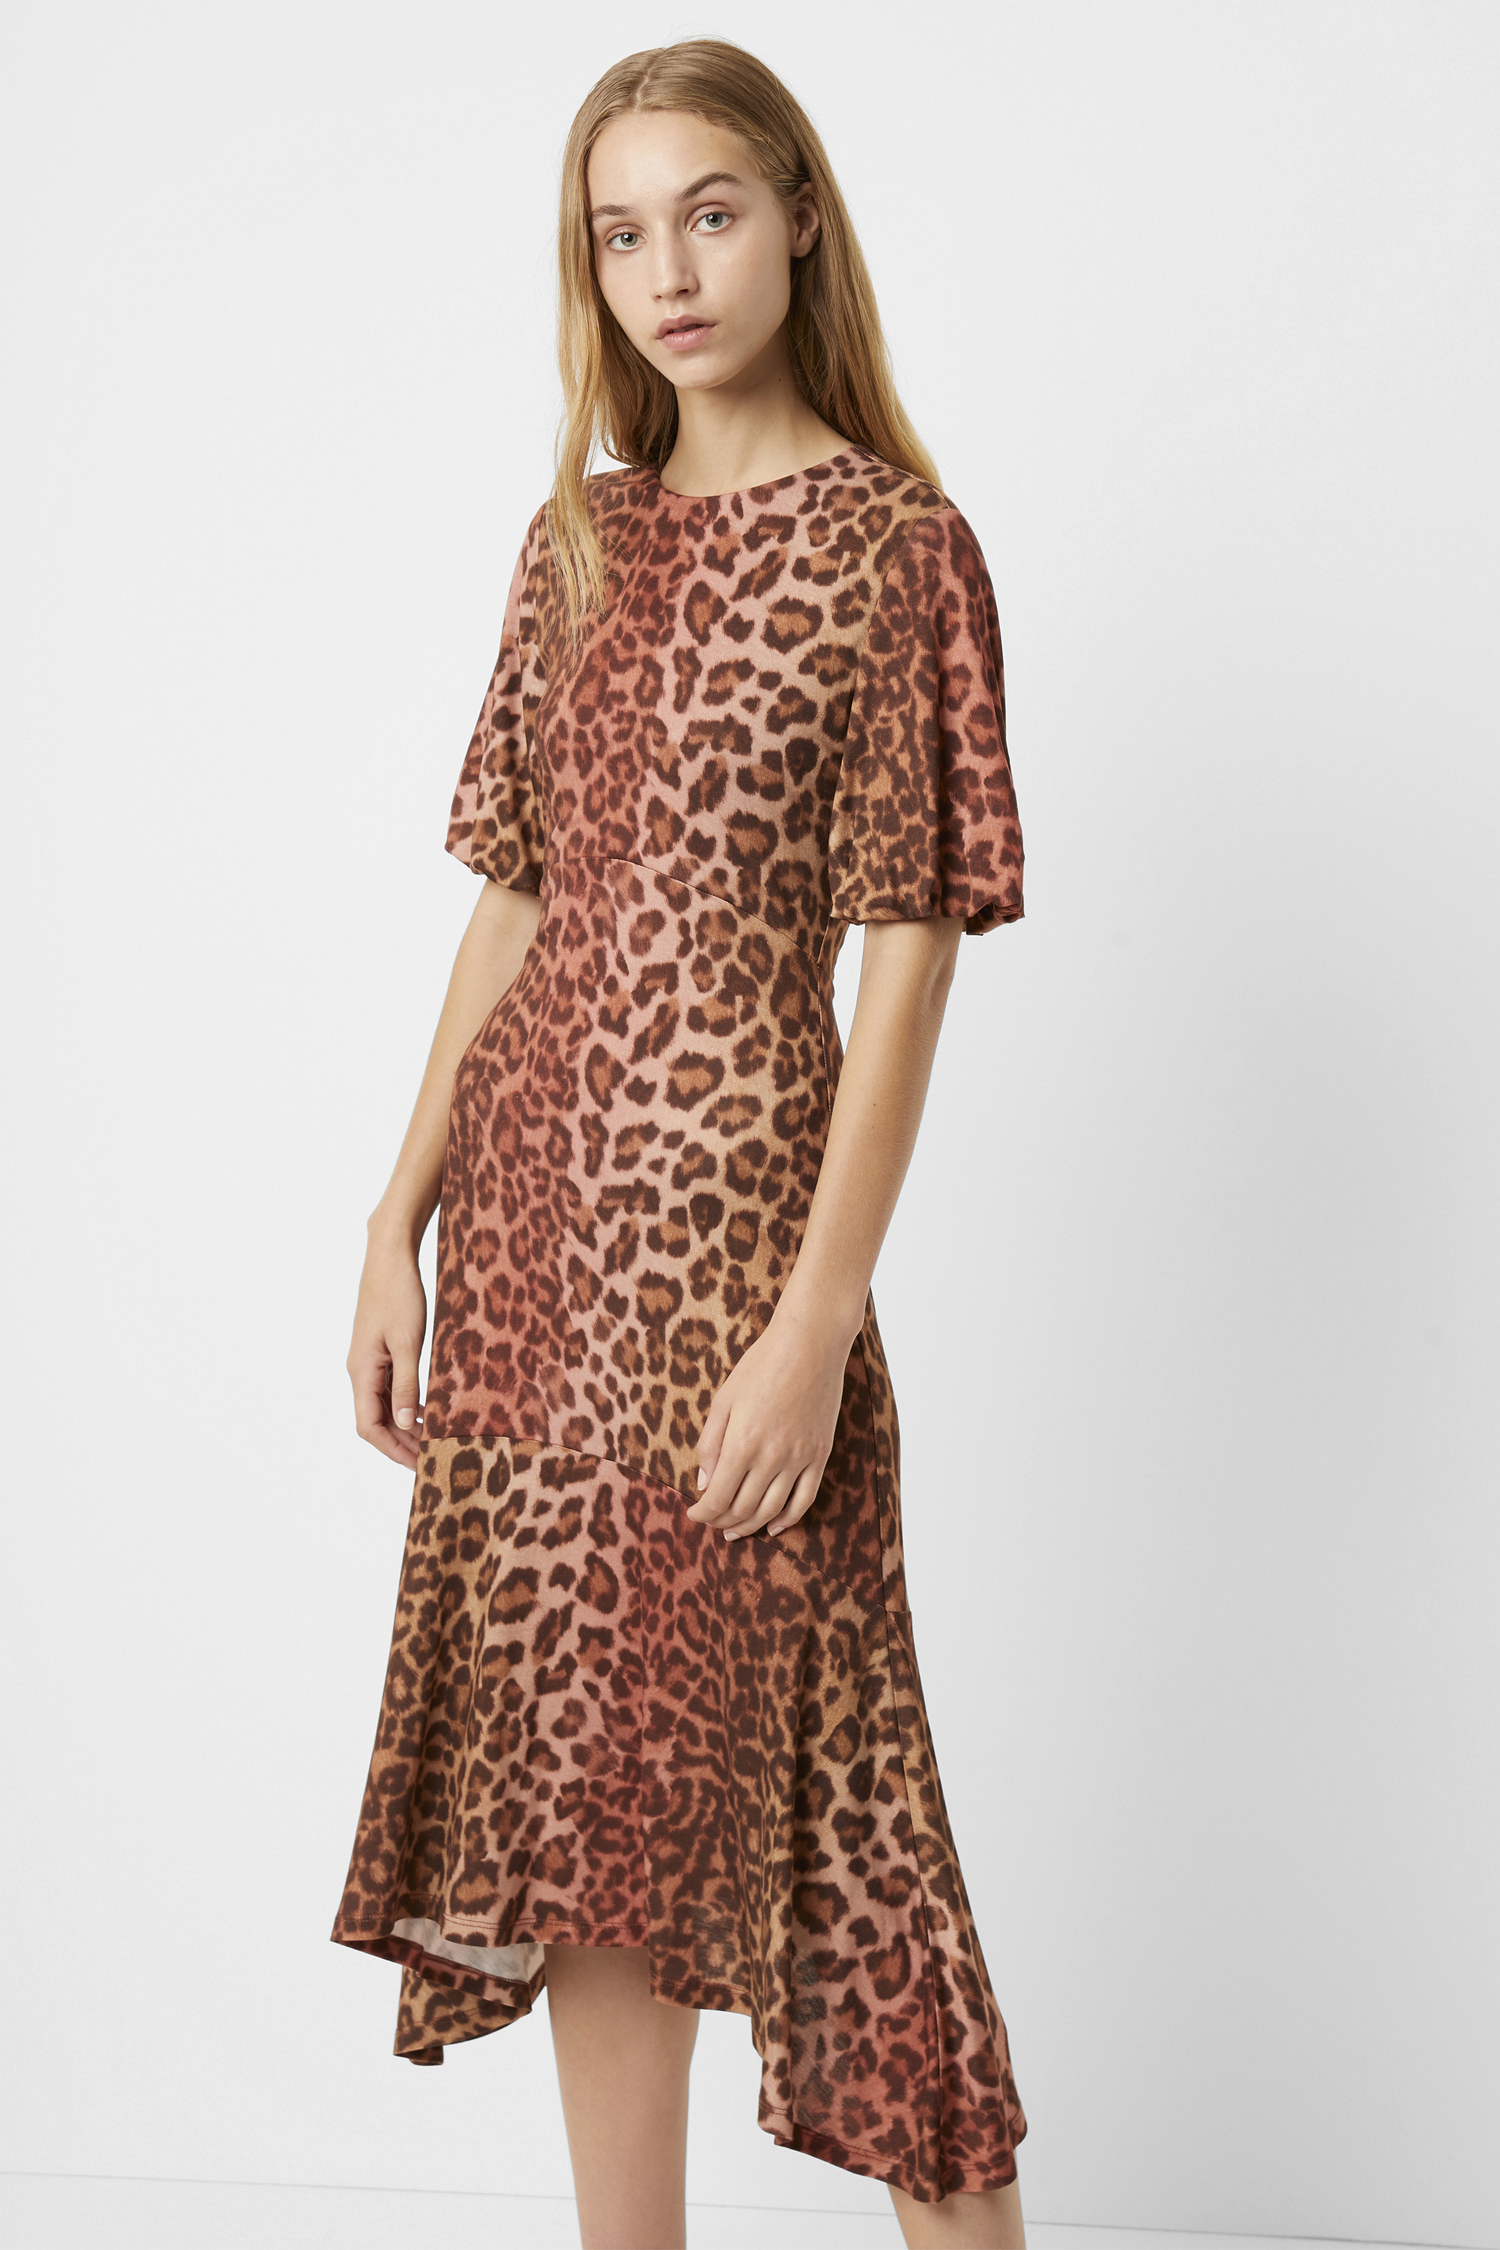 3 Colours Leopard Print Made in Italy Midi Length Dress